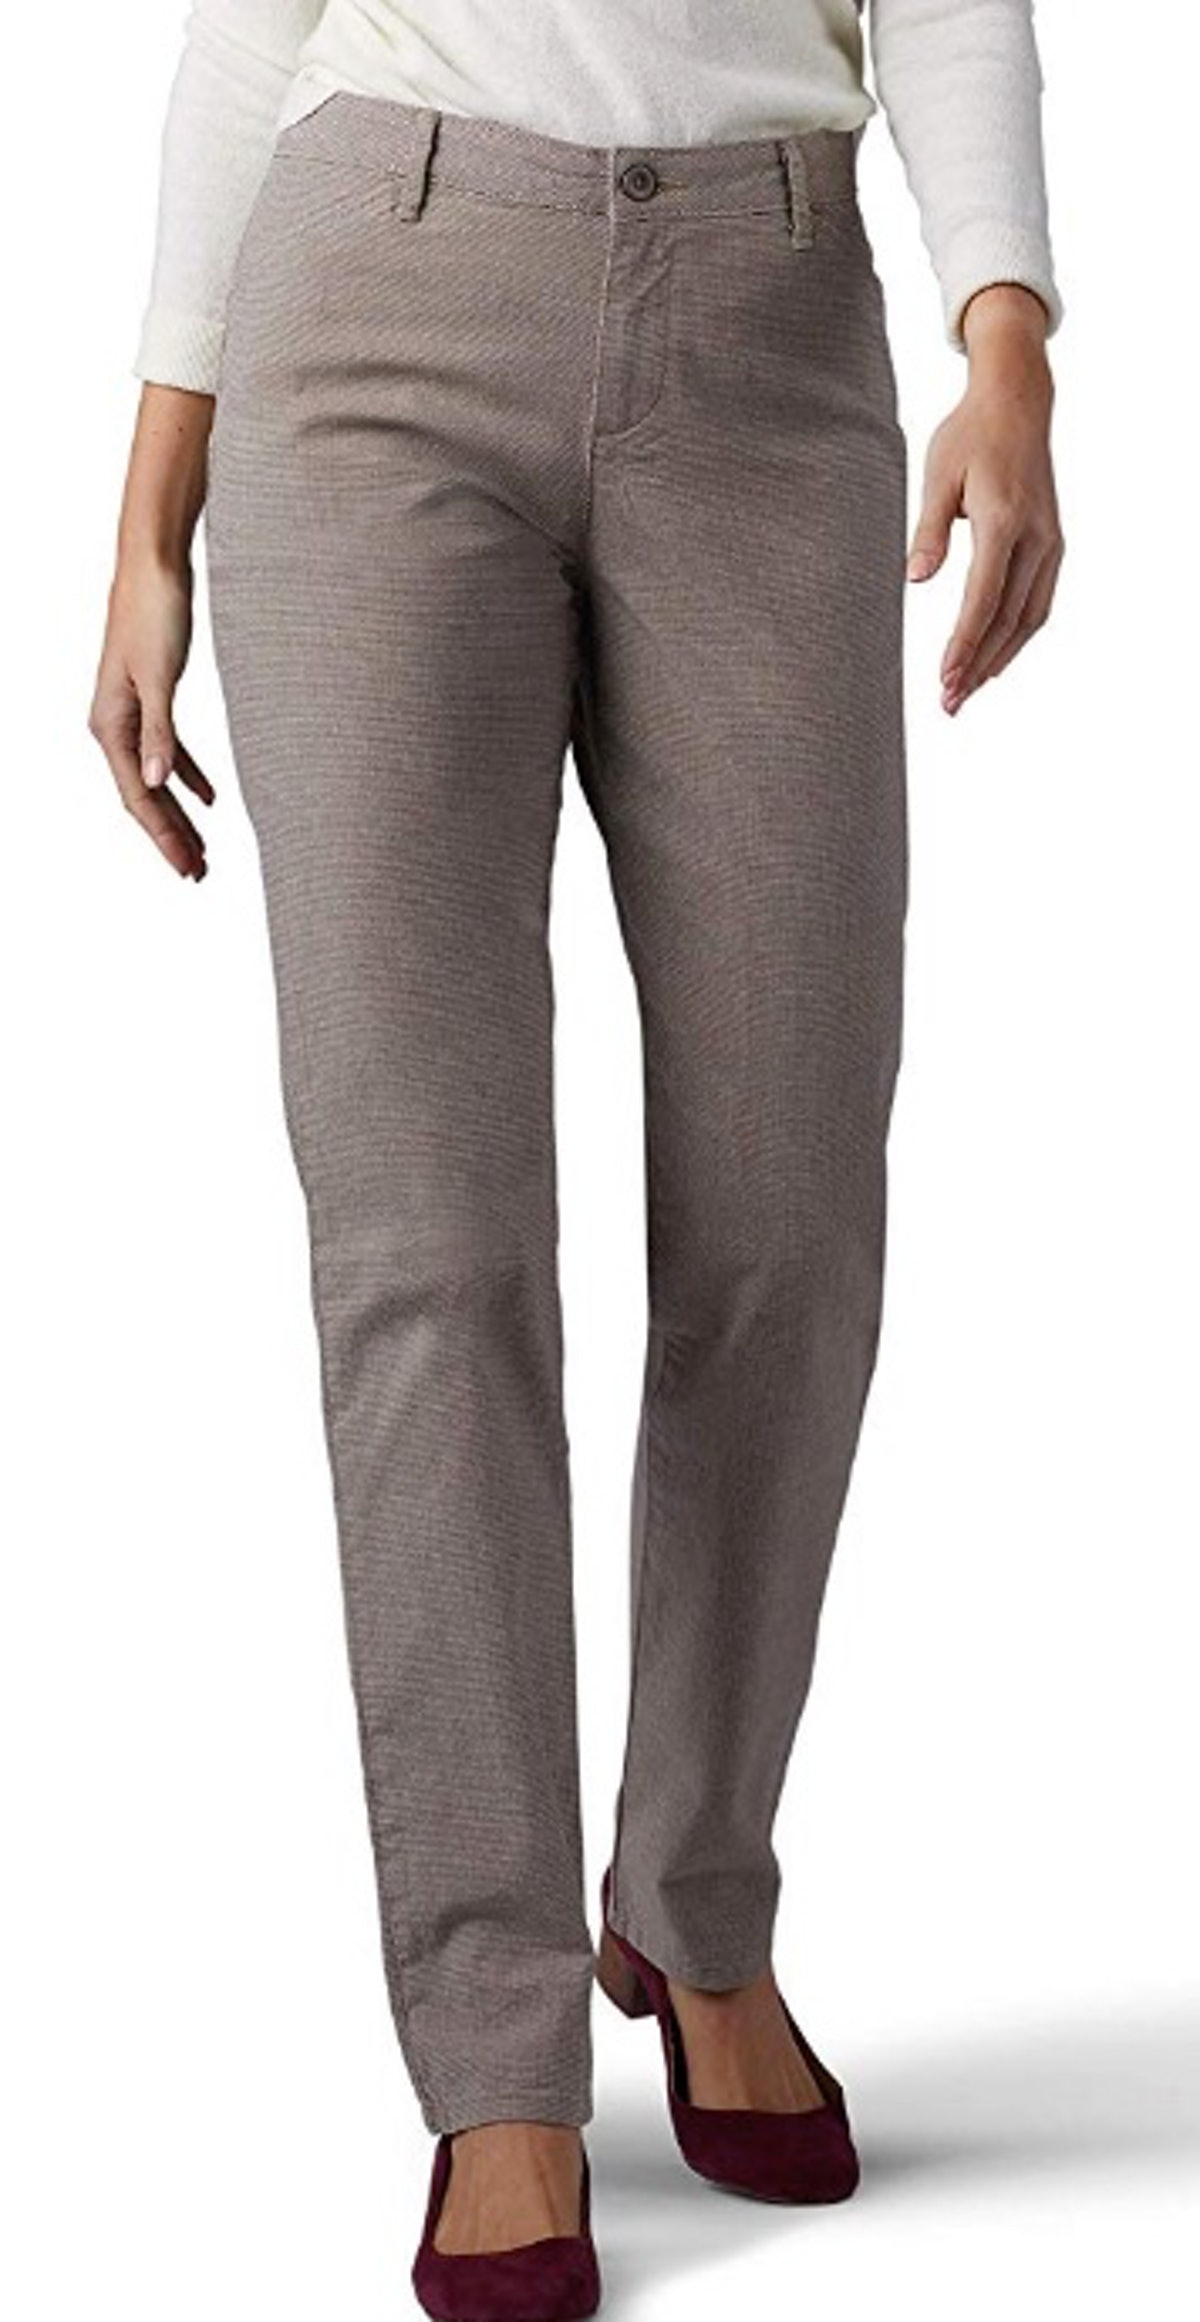 LEE Women's Relaxed Fit Pant